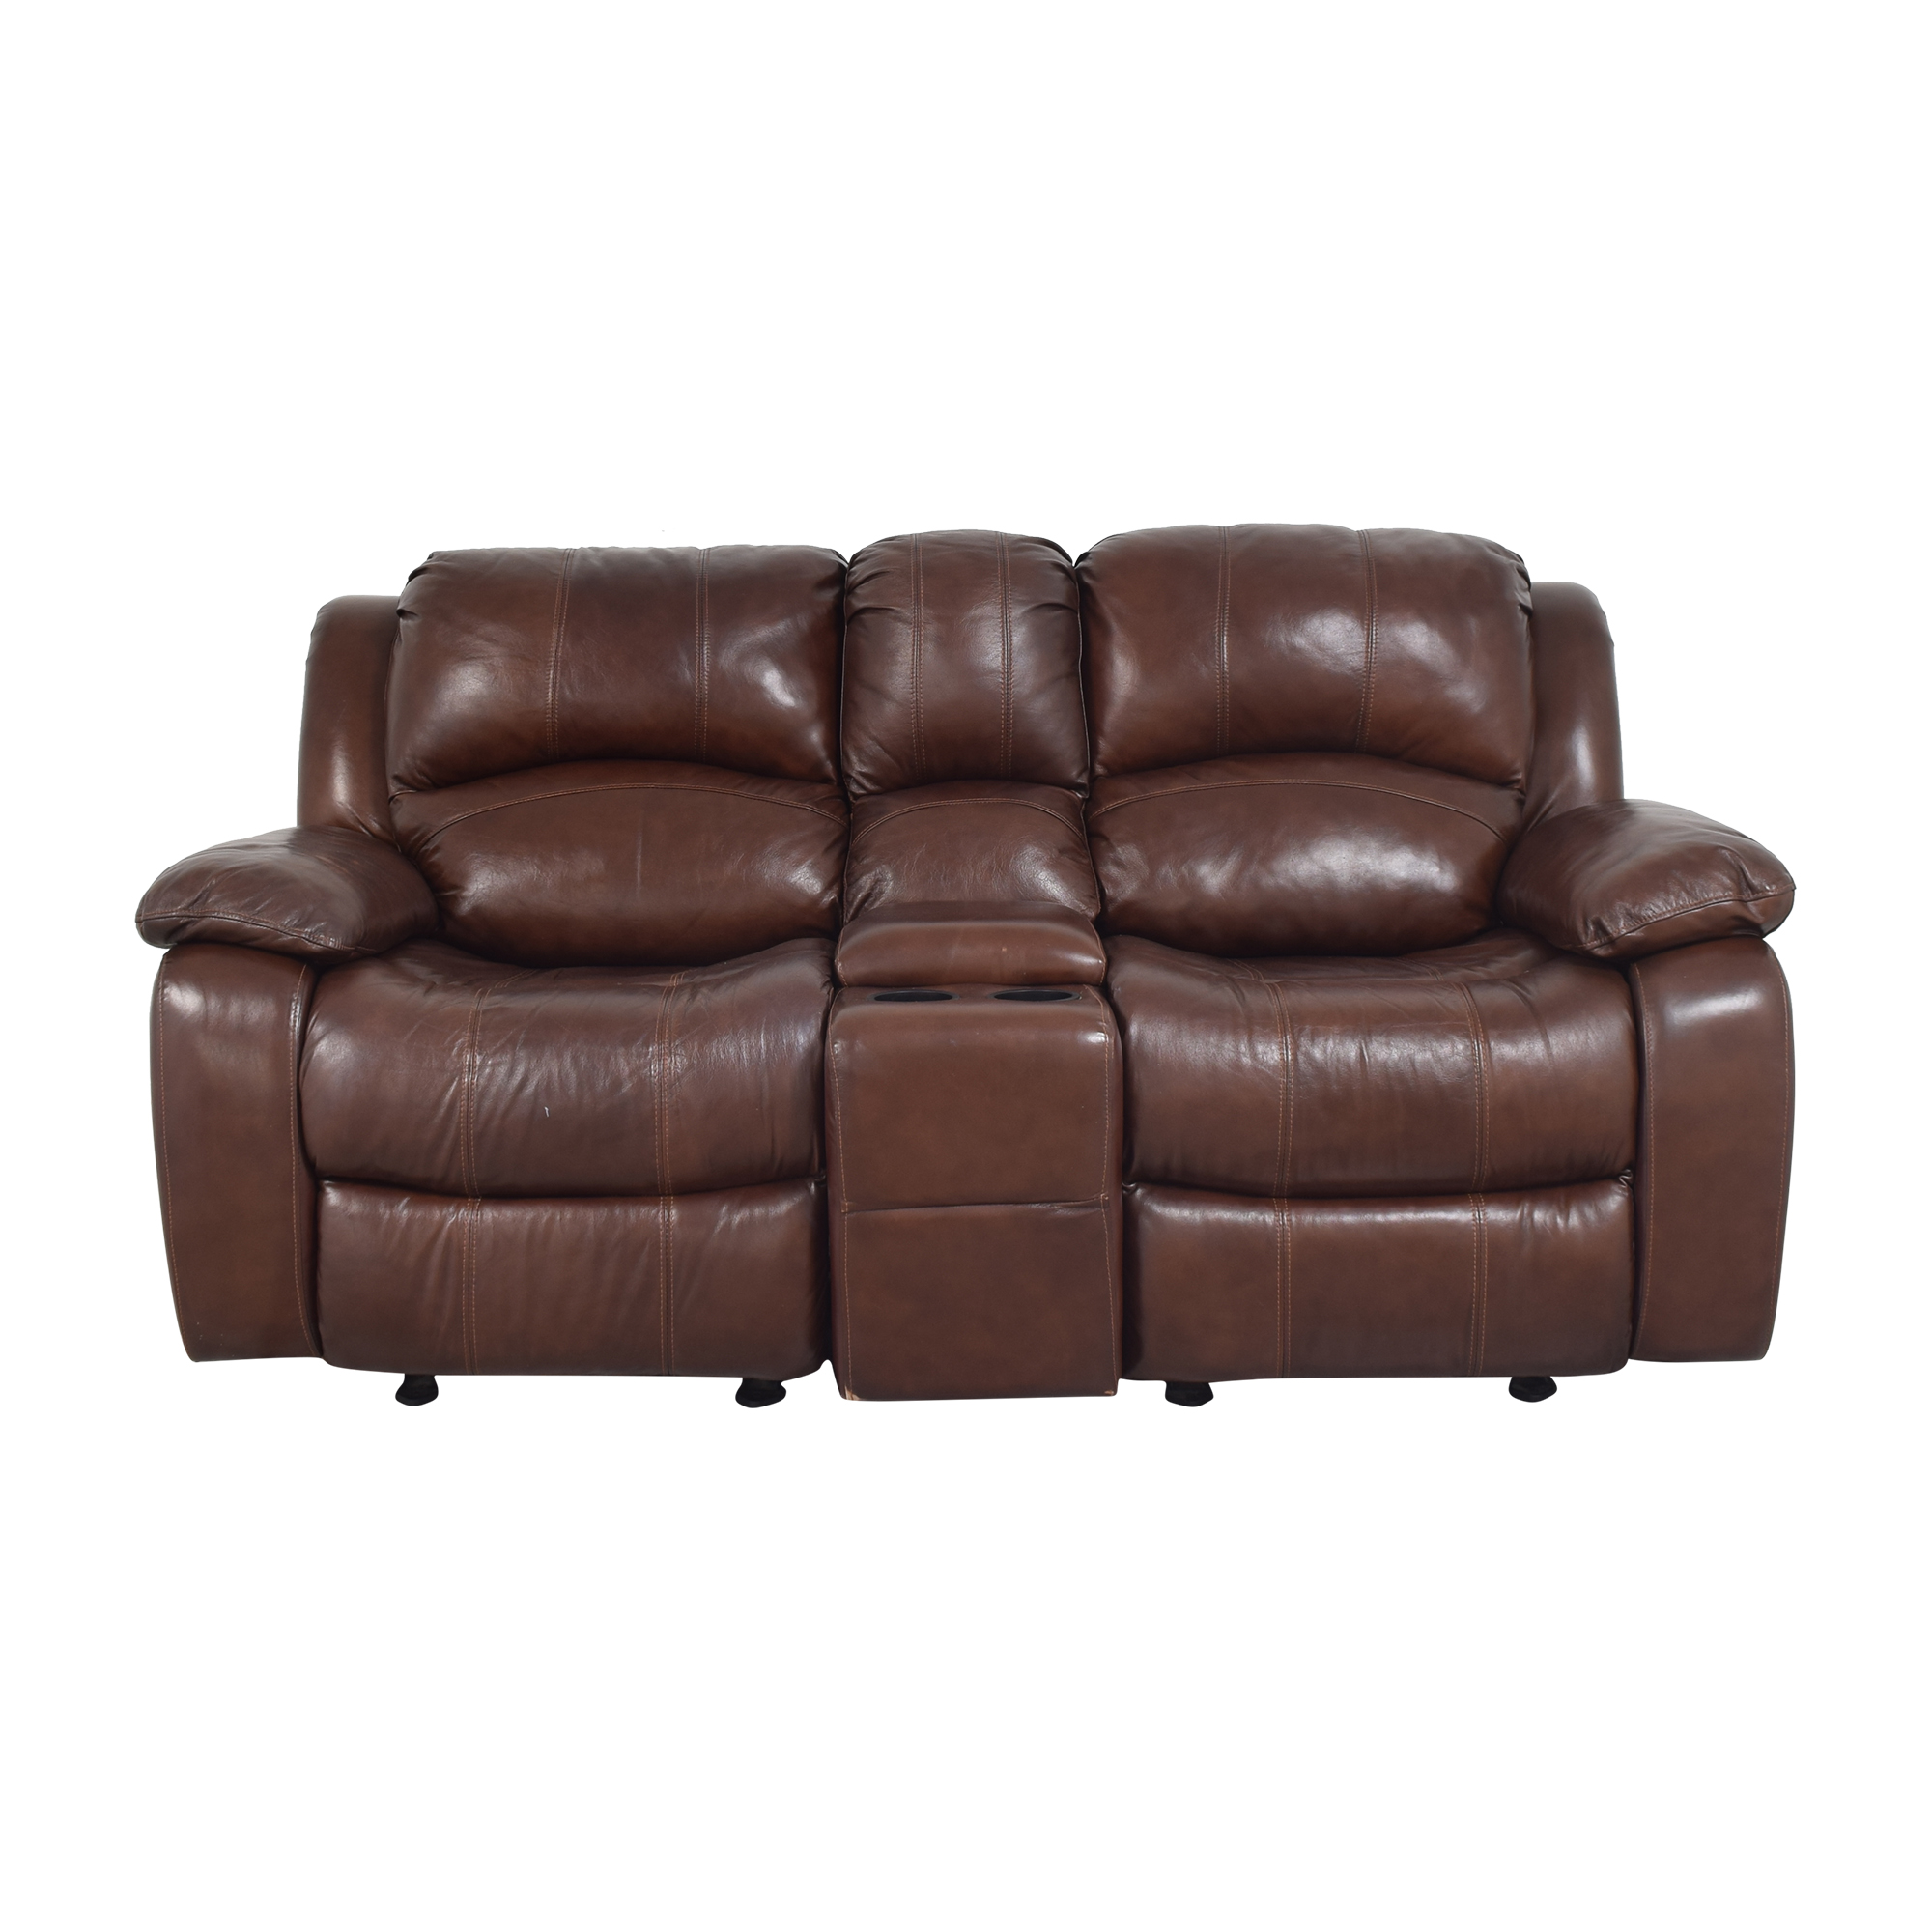 Raymour & Flanigan Raymour & Flanigan Double Rocker Reclining Loveseat brown